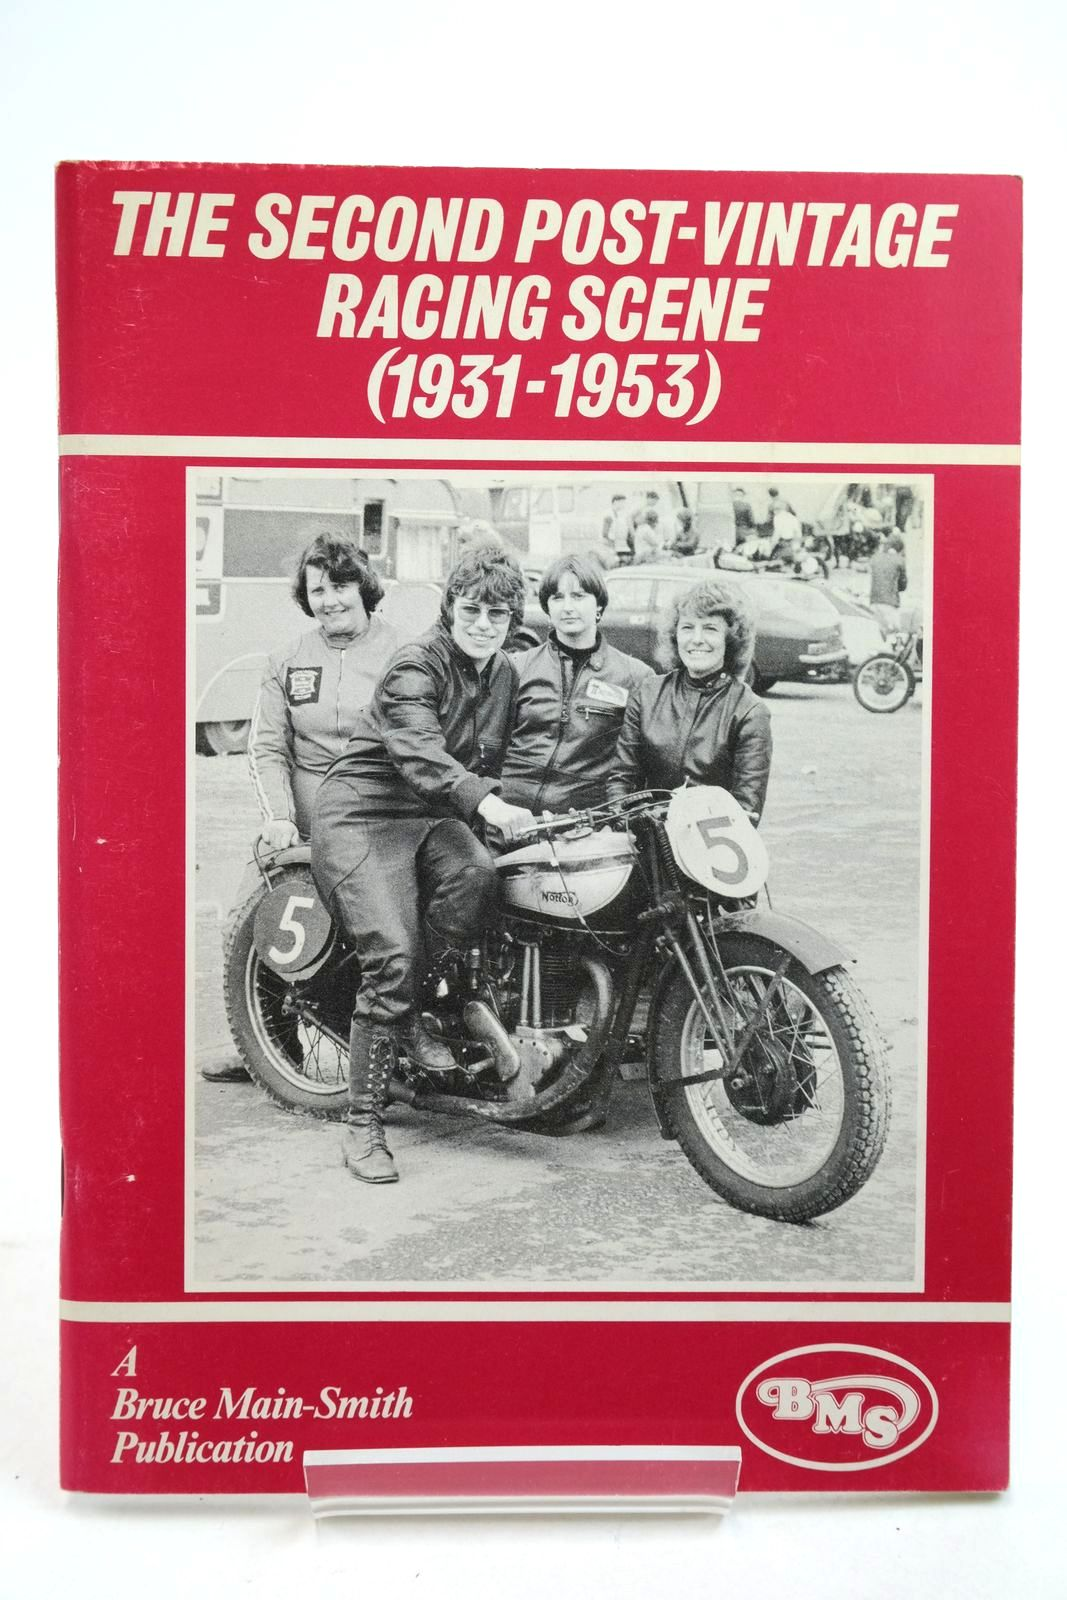 Photo of THE SECOND POST-VINTAGE RACING SCENE (1931-1953) written by Main-Smith, Bruce published by Bruce Main-Smith & Co. Ltd. (STOCK CODE: 2134538)  for sale by Stella & Rose's Books